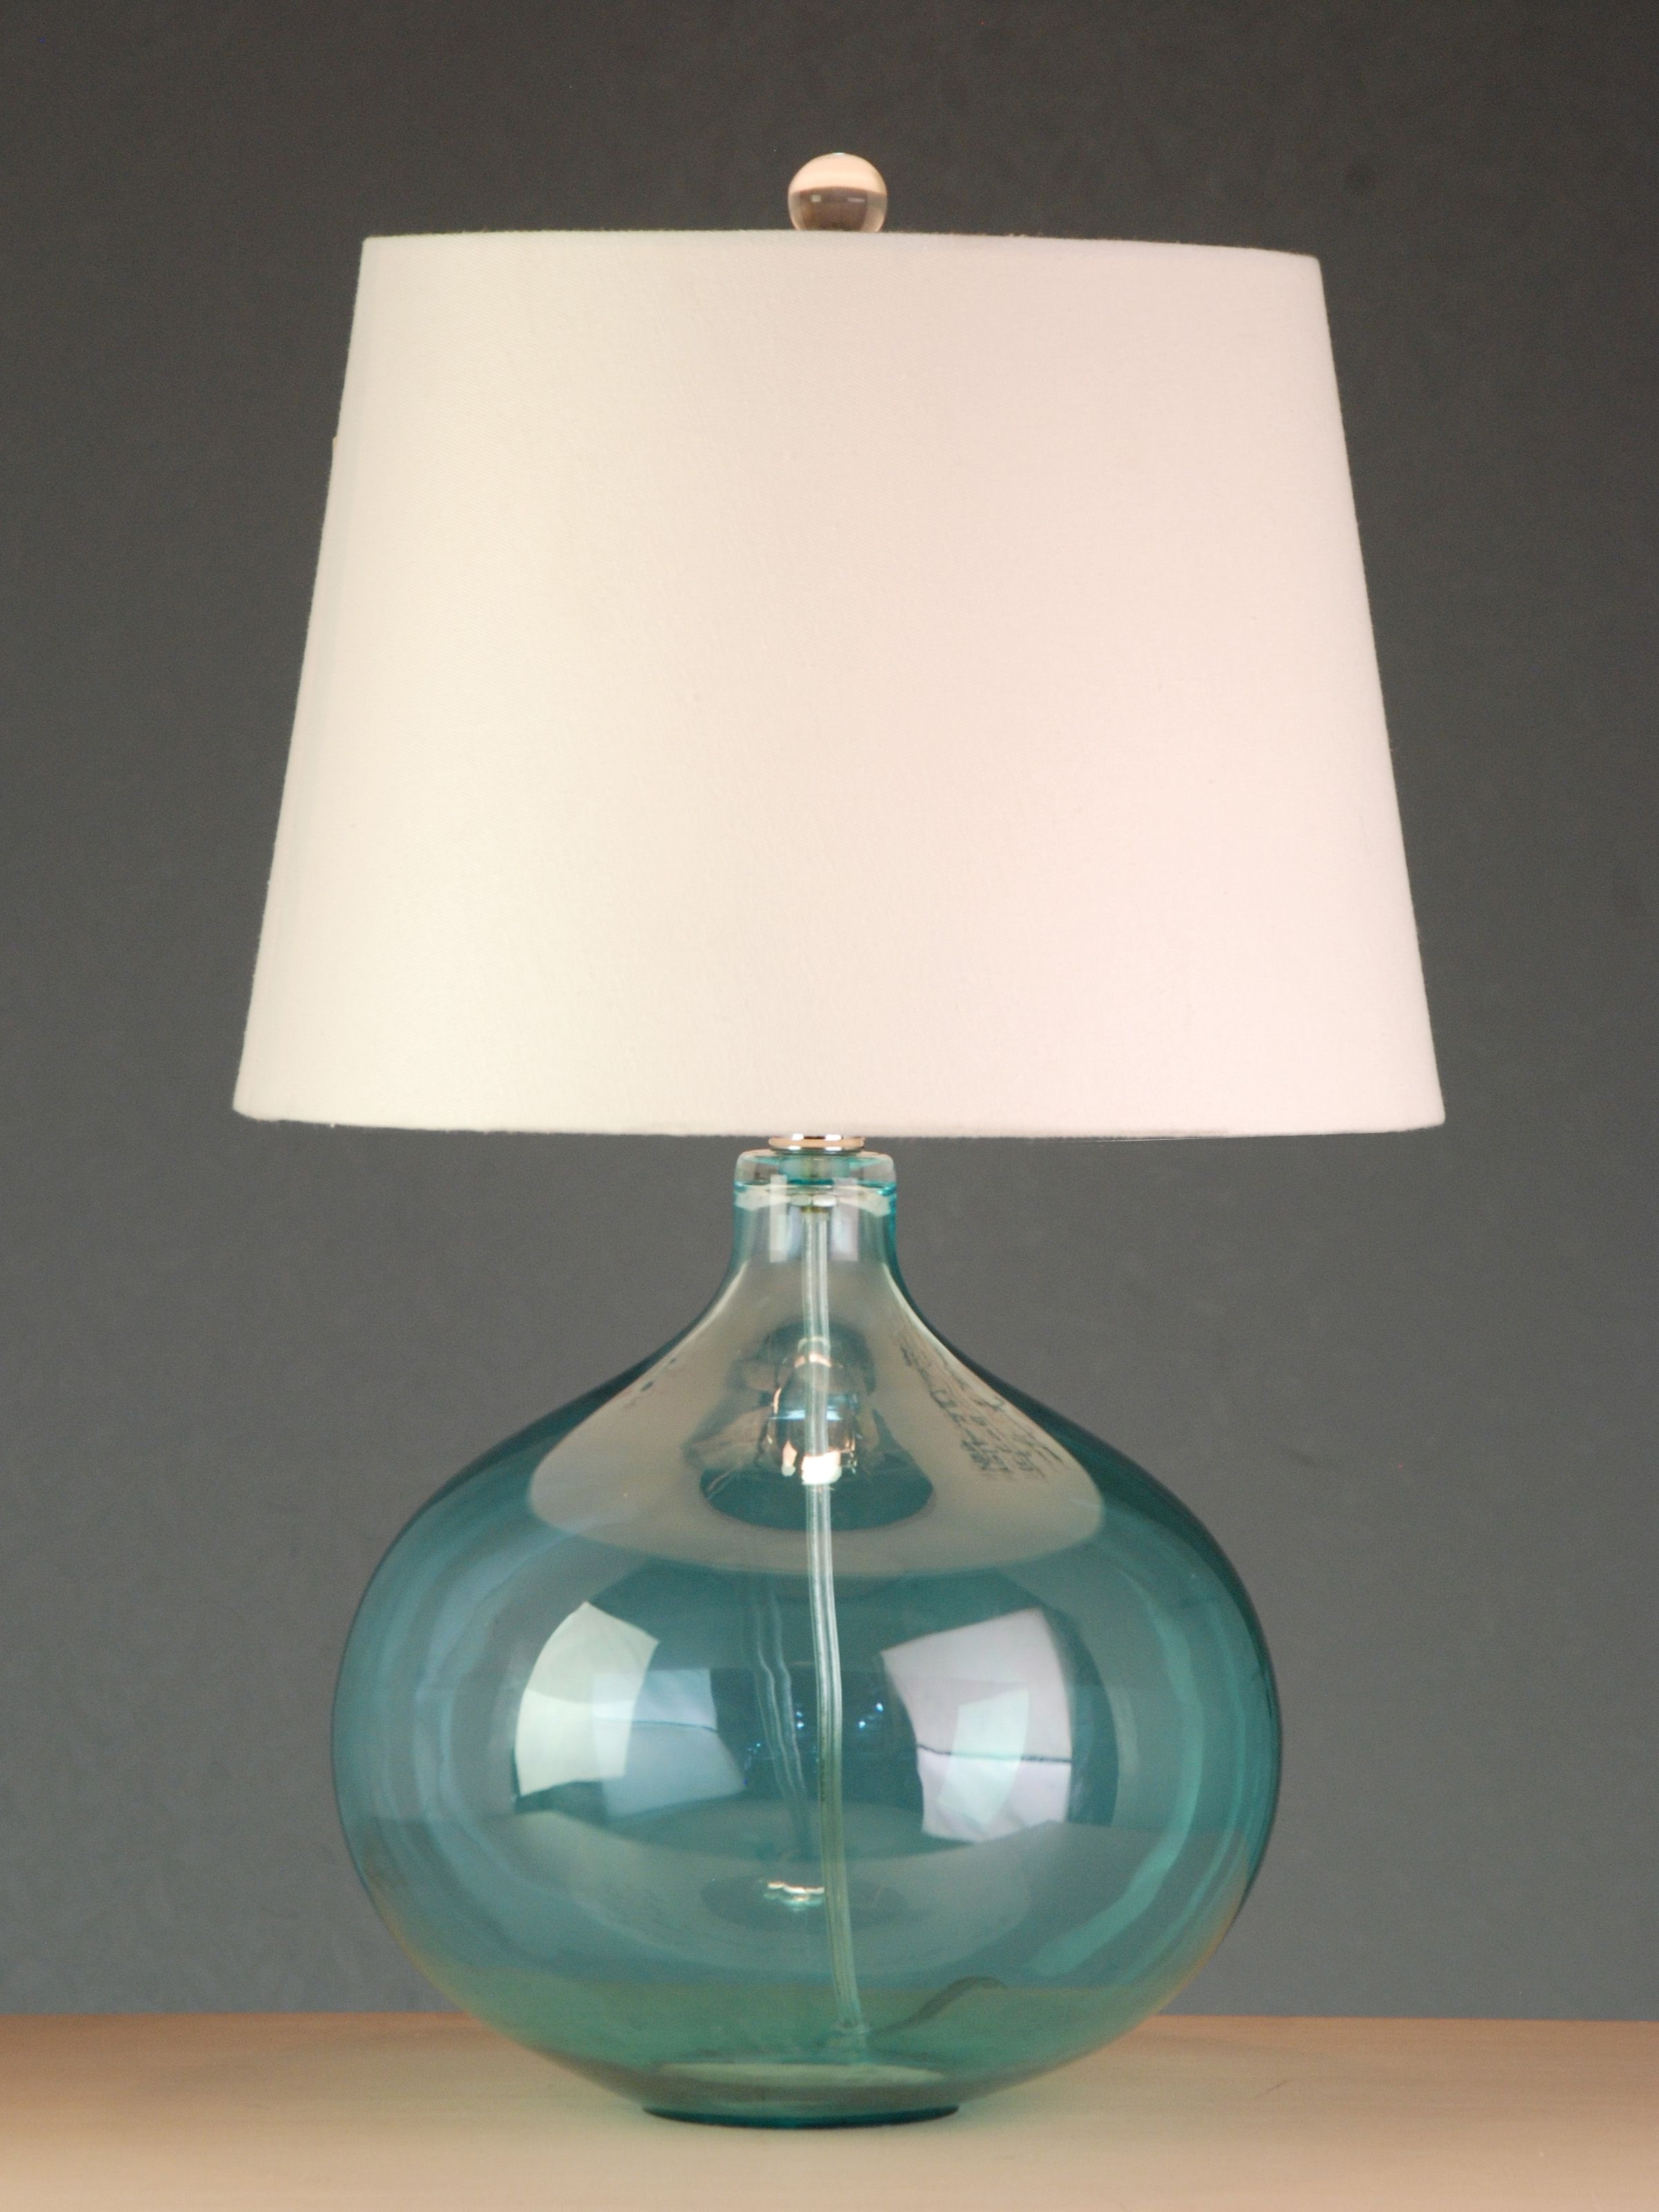 Favorite Living Room Table Lamps At Target Throughout Blue Glass Lamps At Target (View 4 of 15)